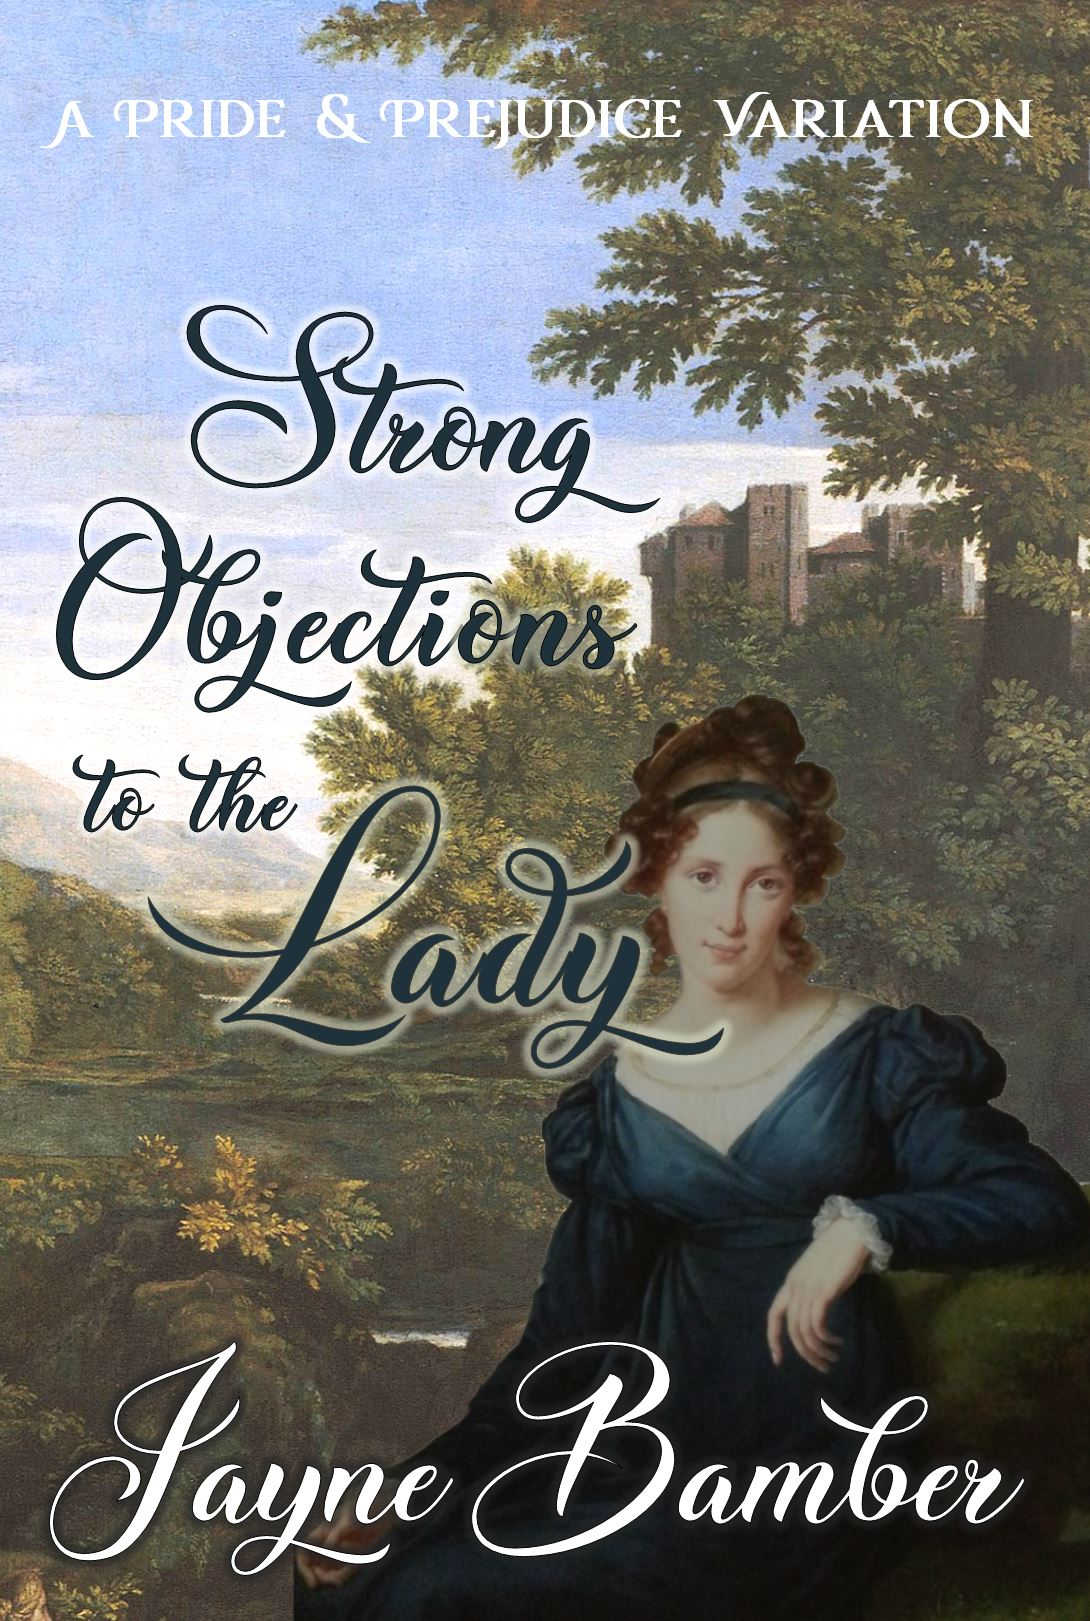 A Strong Objection to the Lady, by Jayen Bamber (2019)